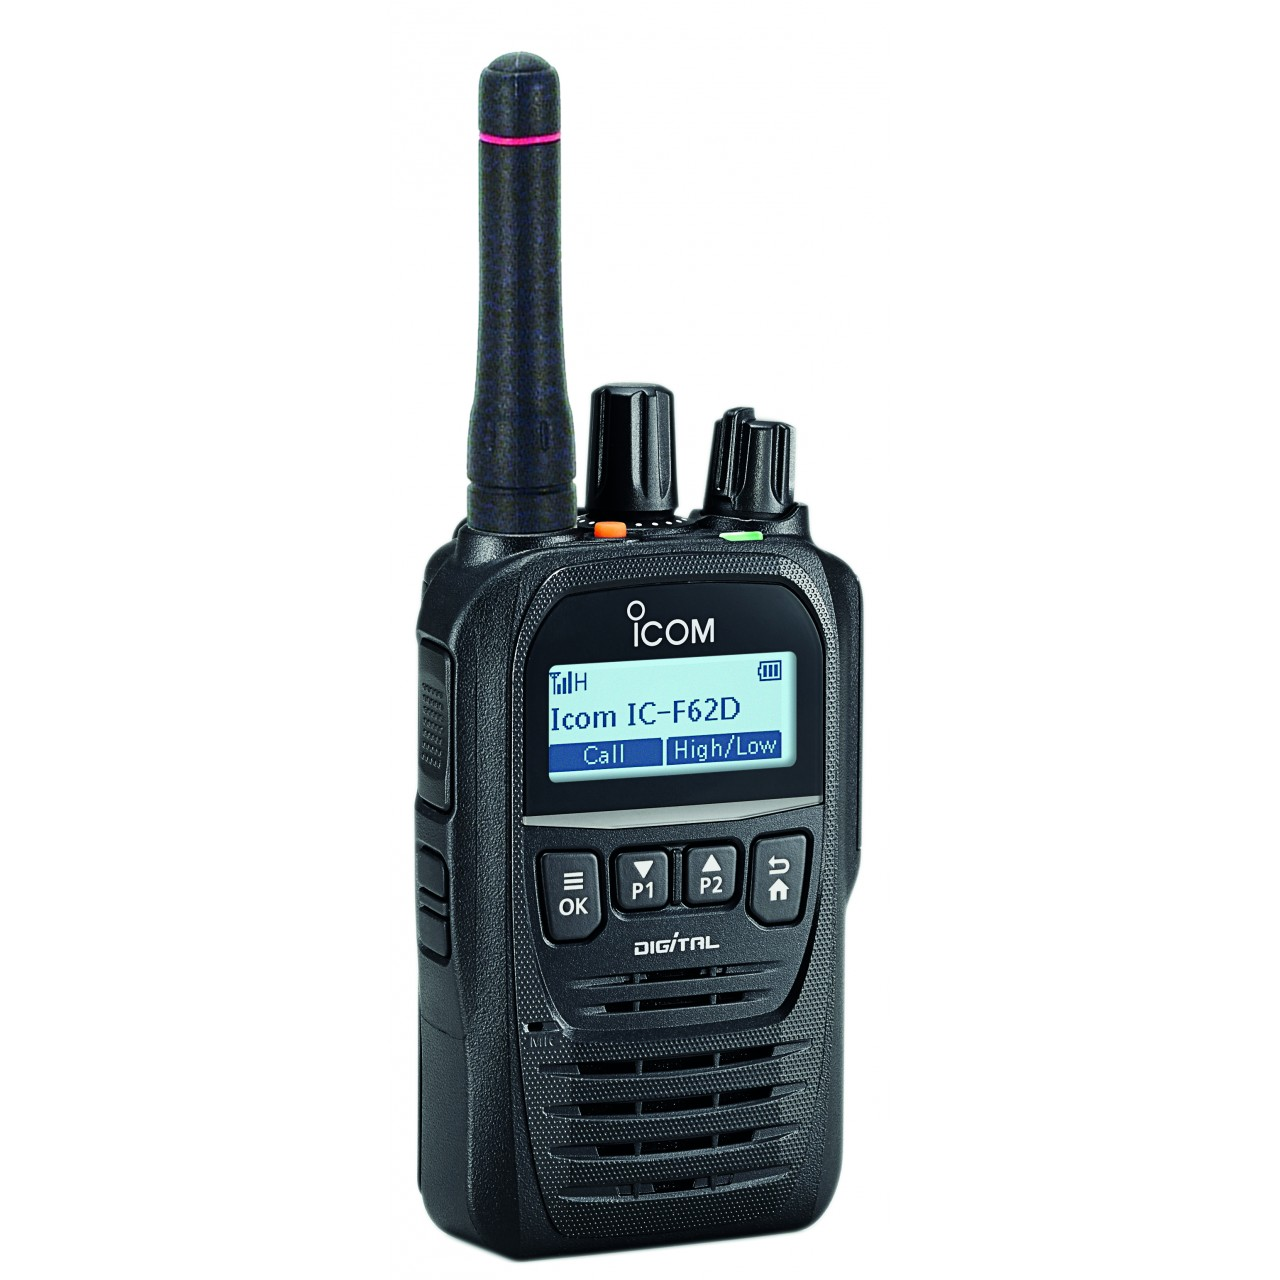 IC-F52D Handhelds - ICOM